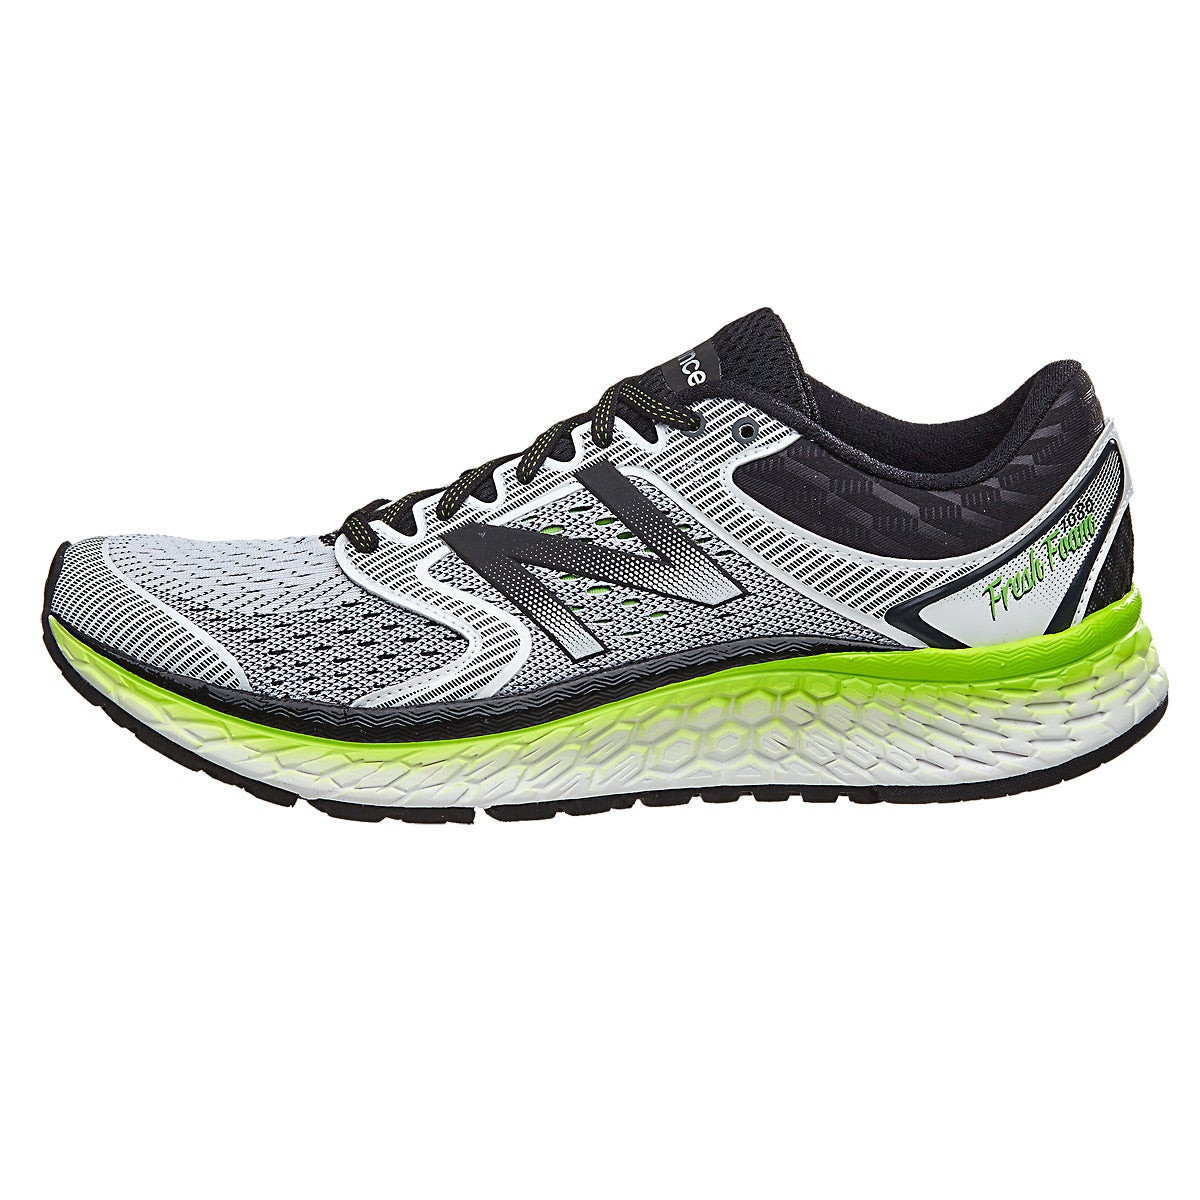 The New Balance is a versatile road racing flat. Its responsive yet cushioned ride makes it a great option for uptempo workouts, interval training, or road racing over any distance.